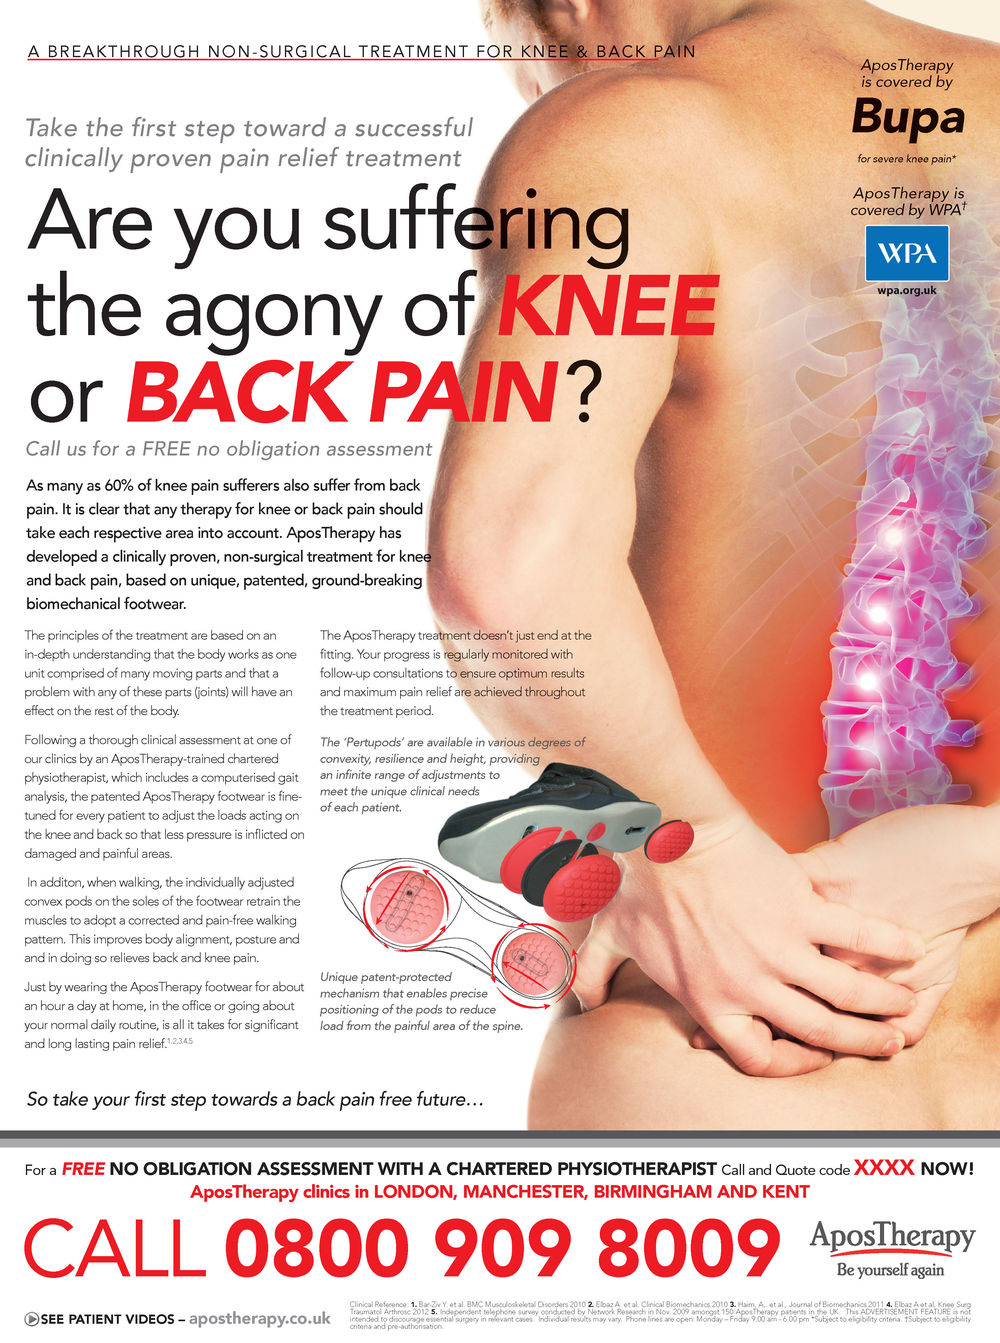 toybox_creative_apostherapy_backpain_dr_Page_1.jpg